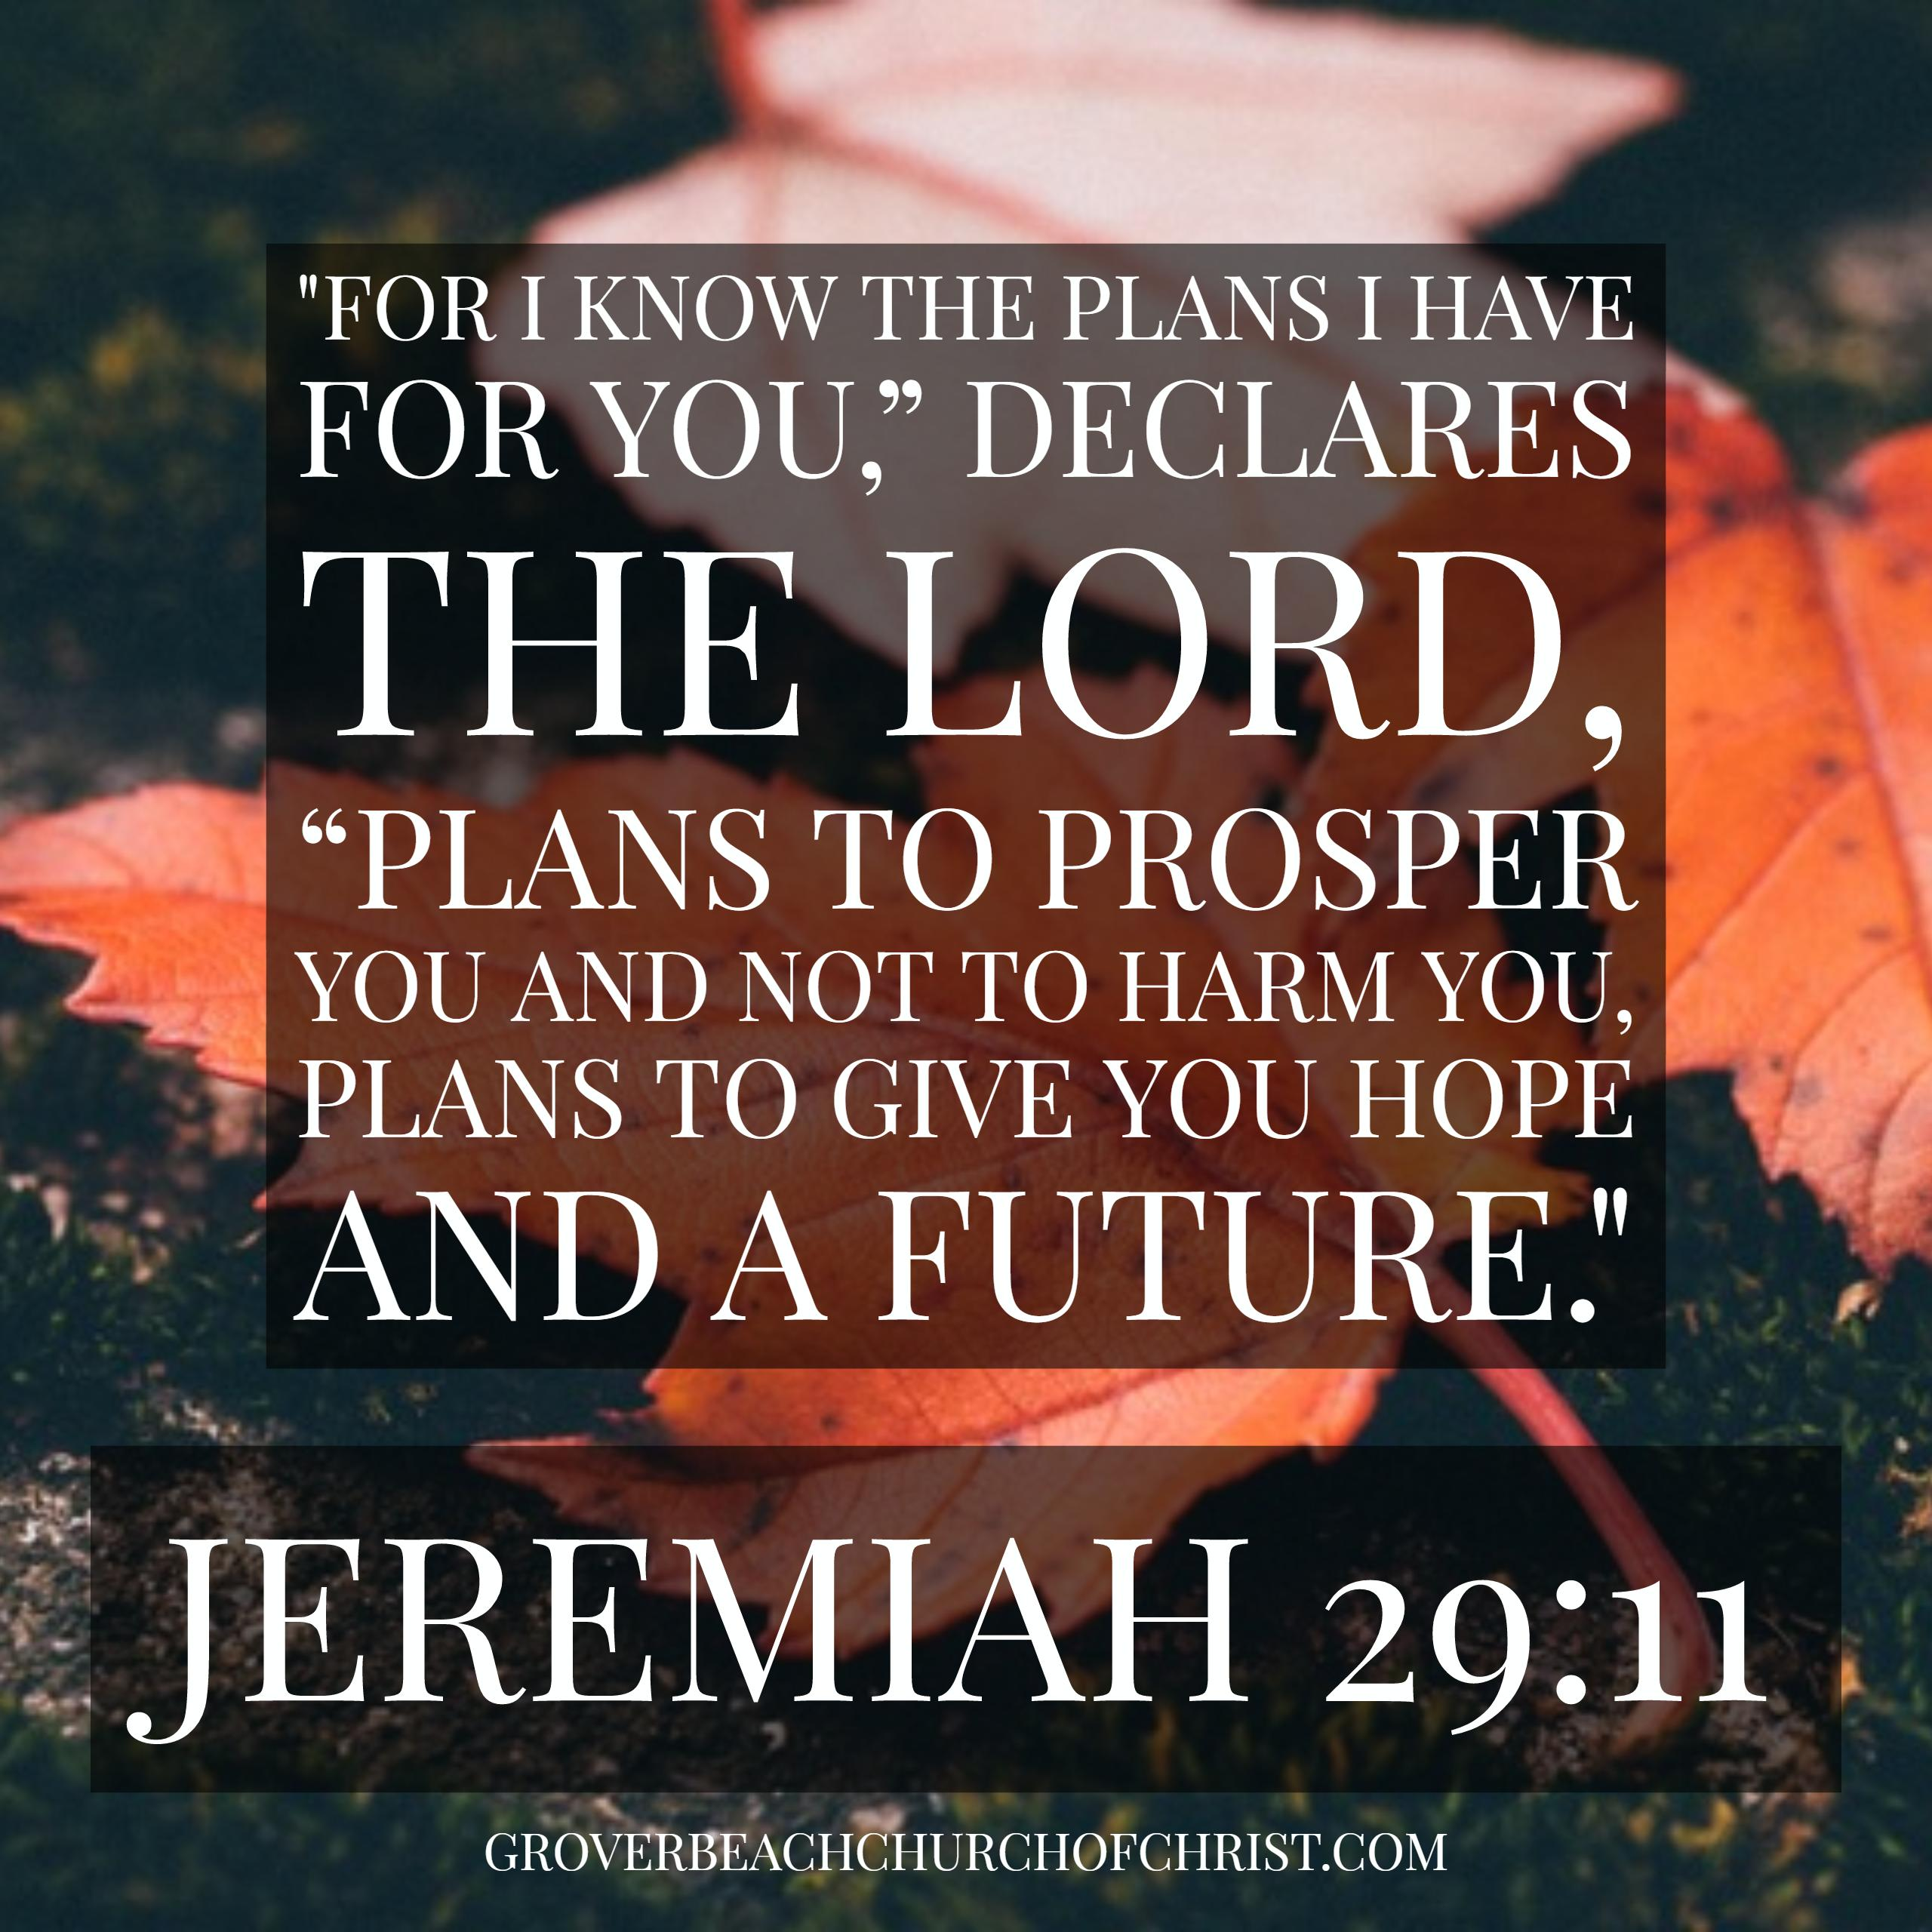 jeremiah-29-11-for-i-know-the-plans